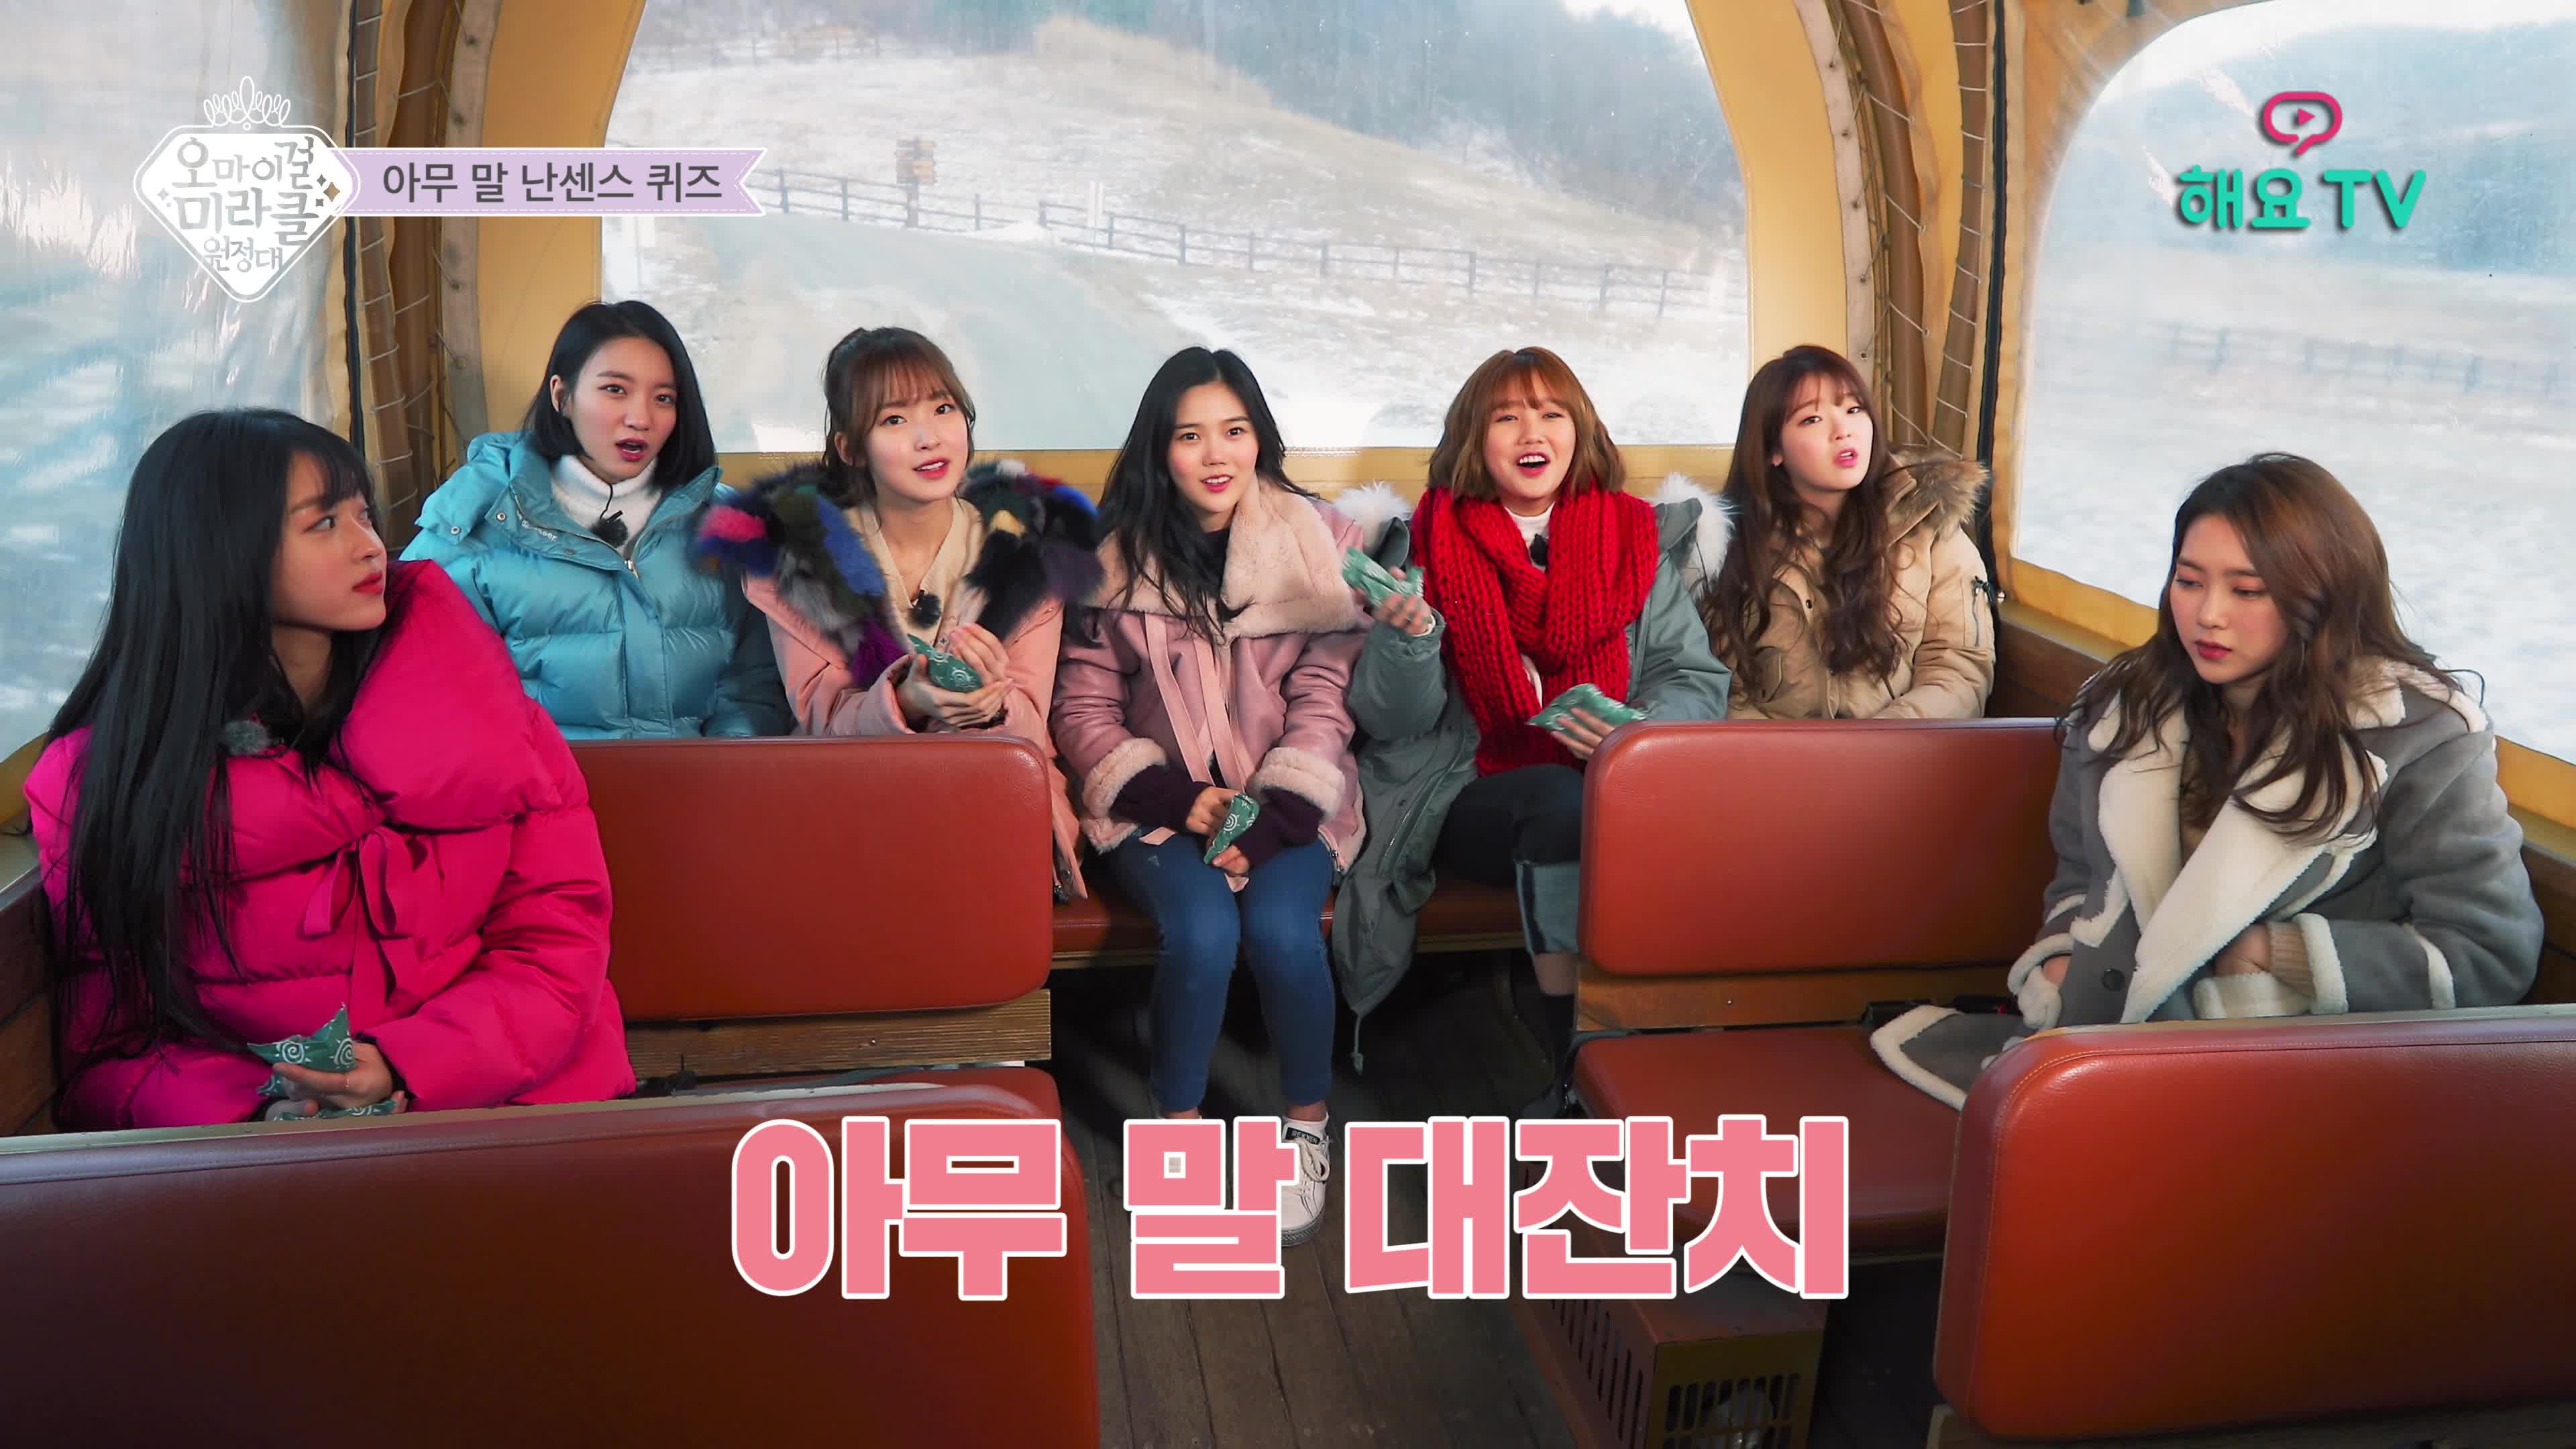 [FULL] EP.6 OH MY GIRL - 오마이걸 미라클원정대(OH MY GIRL MIRACLE EXPEDITION) EP.6